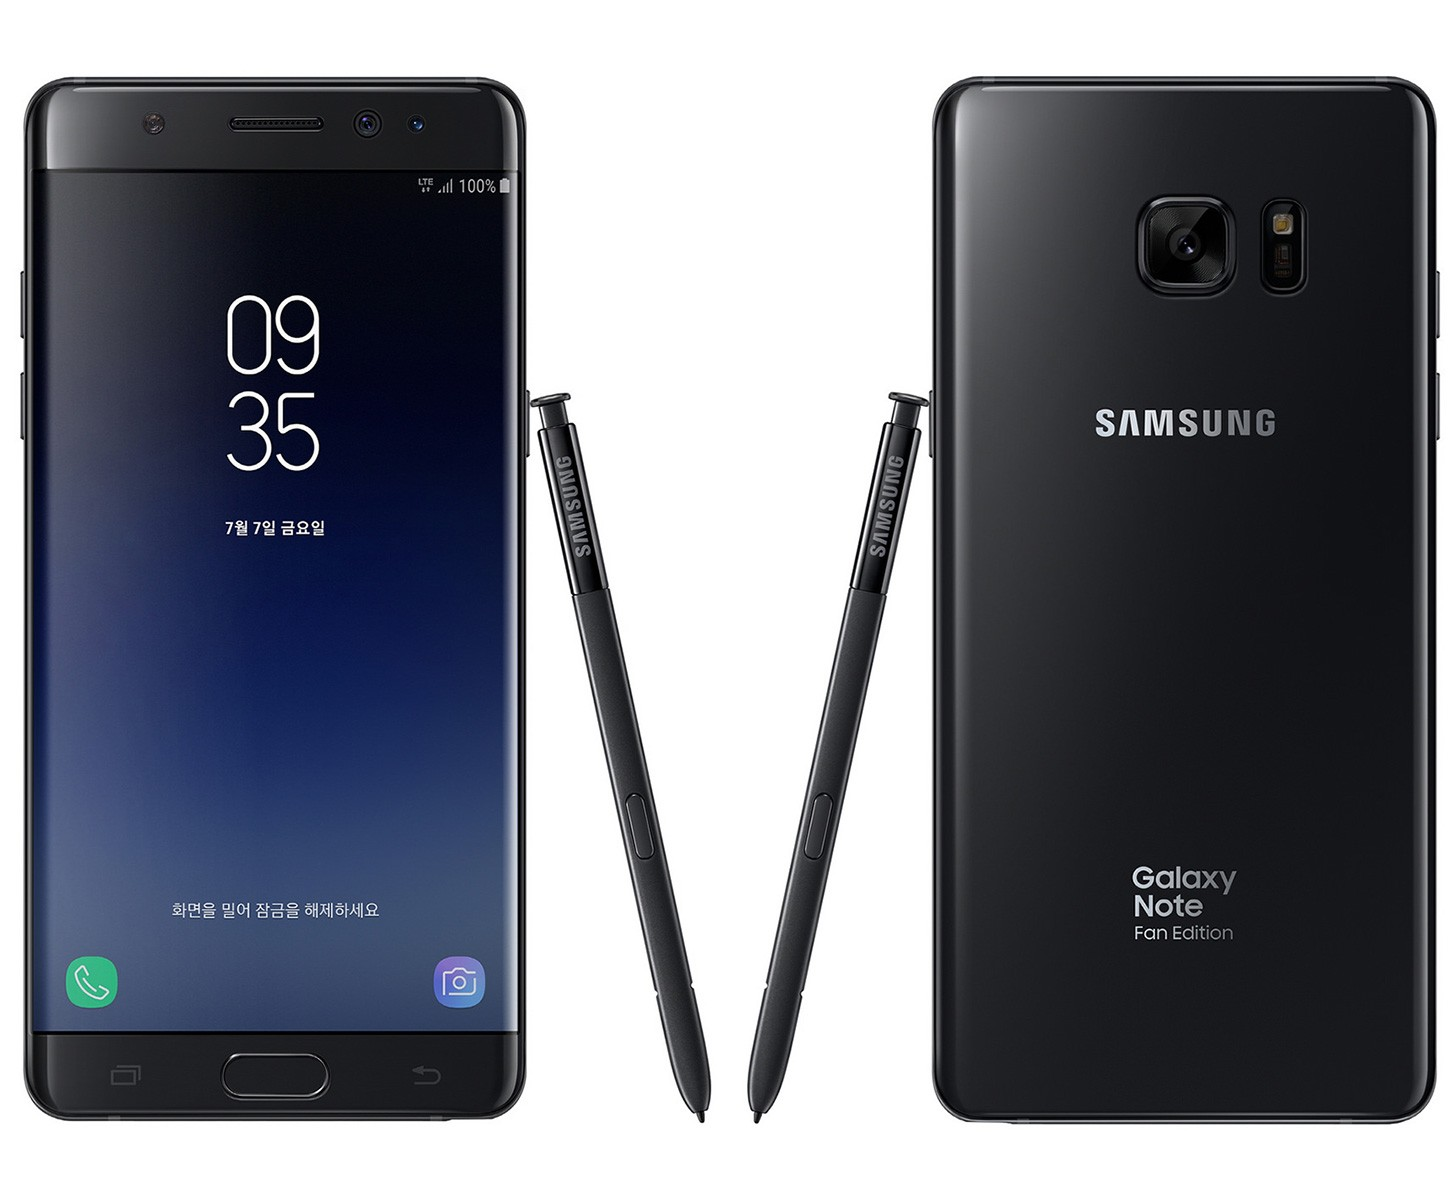 samsung-galaxy-note-fe-1